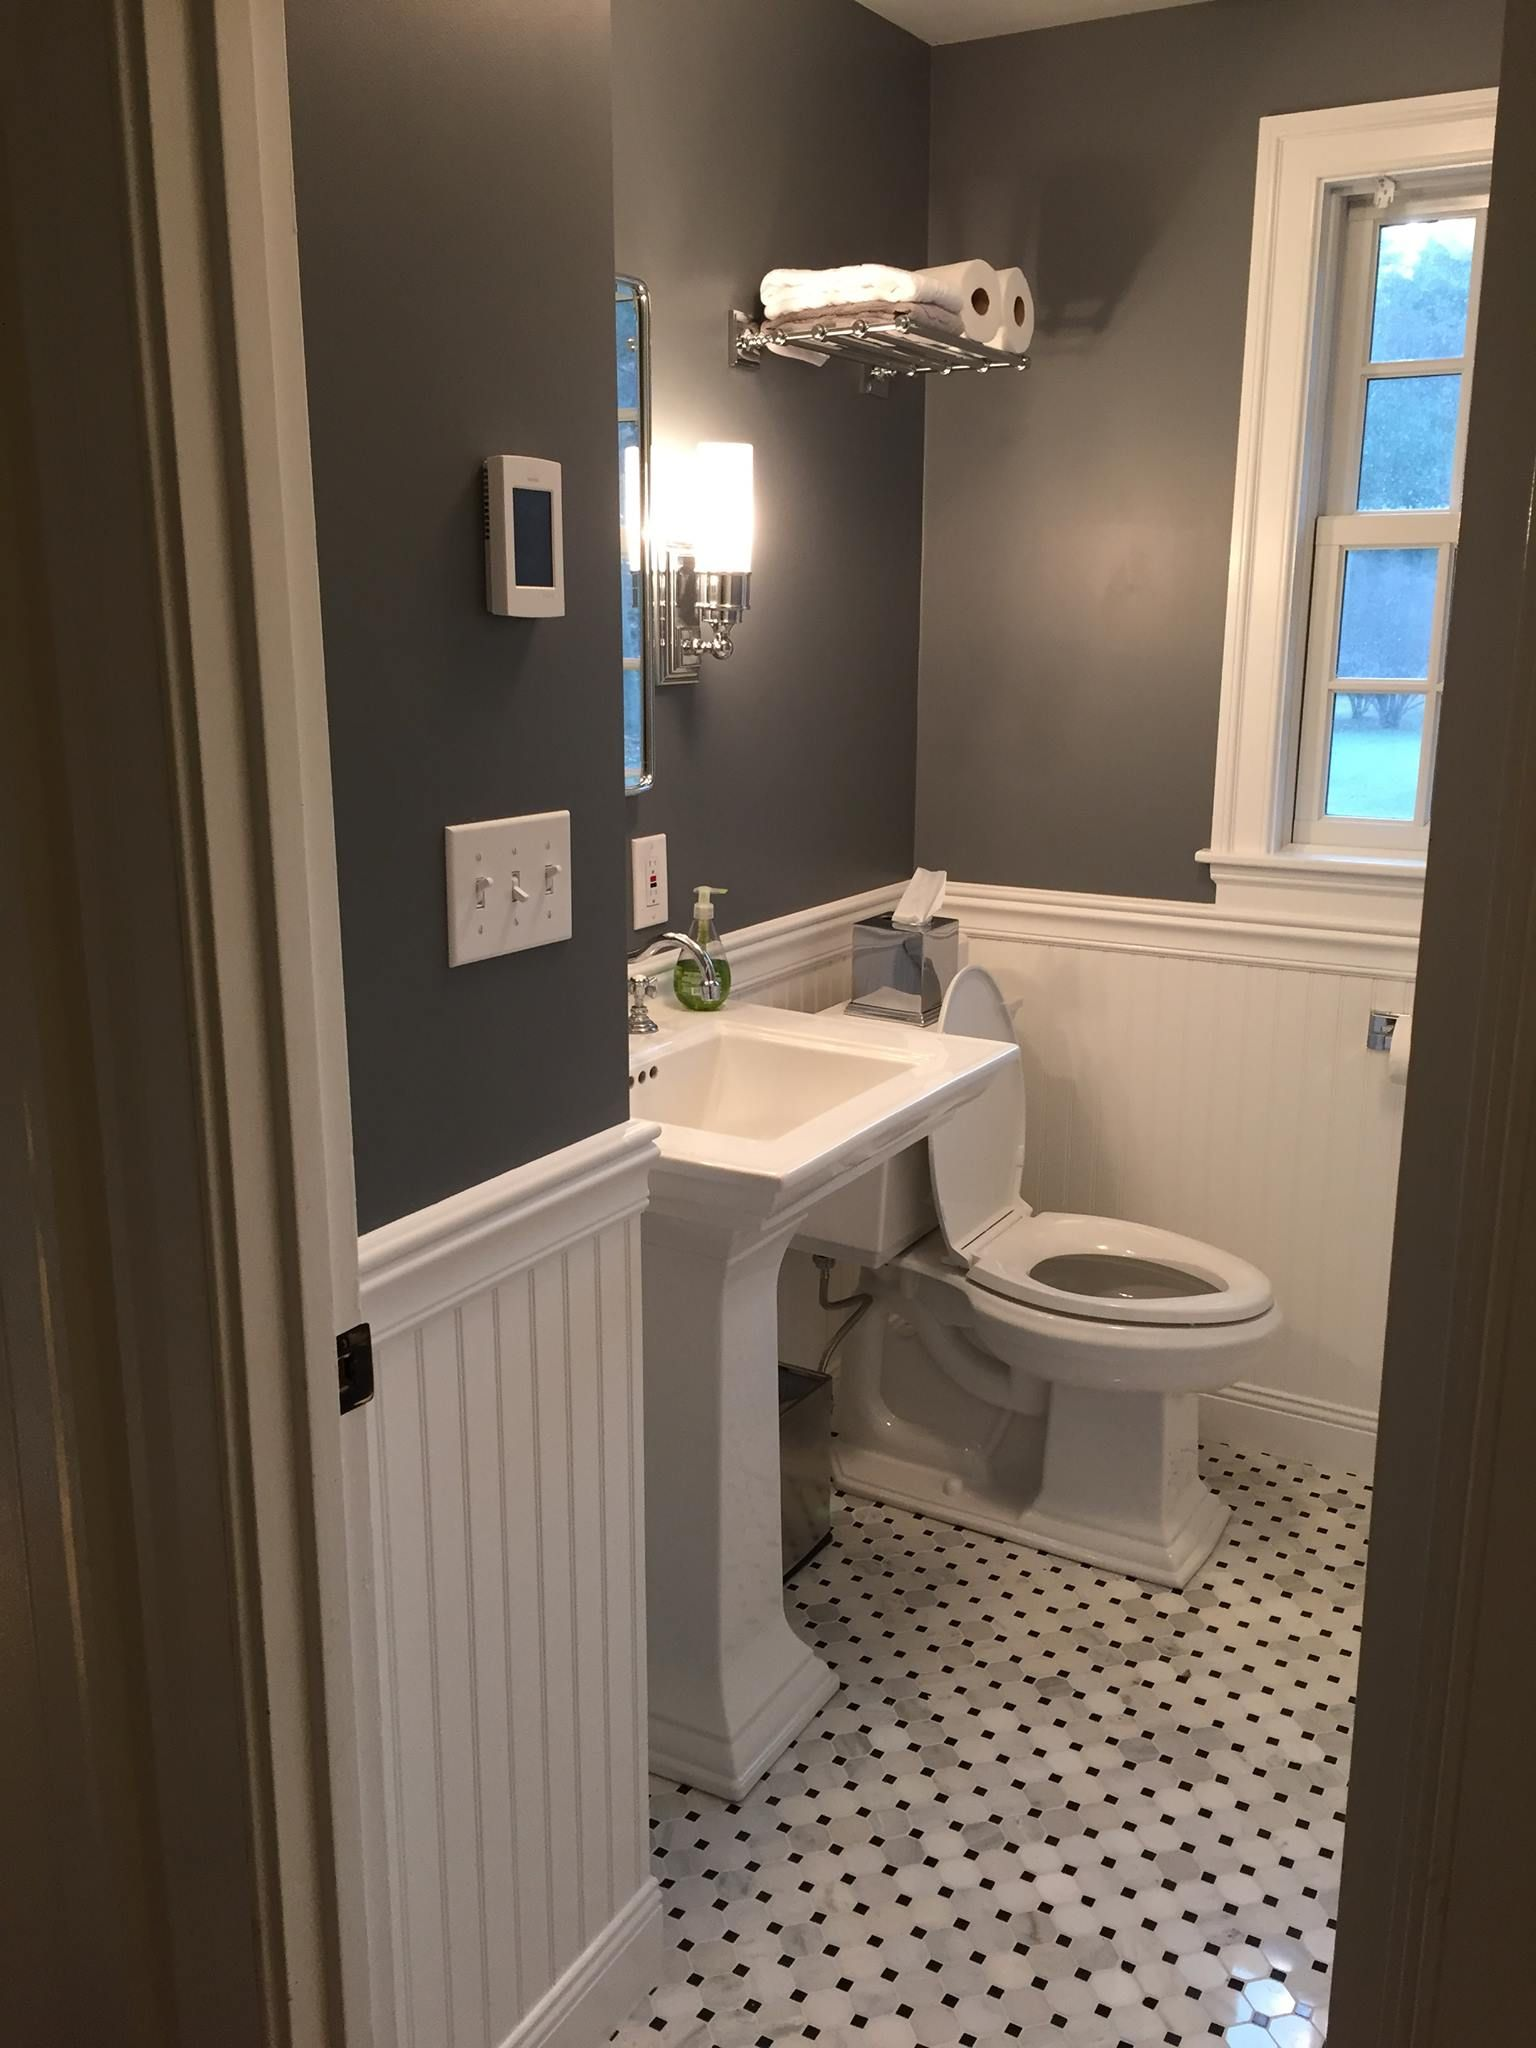 With creative small bathroom remodel ideas even the tiniest washroom can be as comfortable  lounge perfect sized sink and countertop minimalist also beautiful half for your home new decor rh pinterest